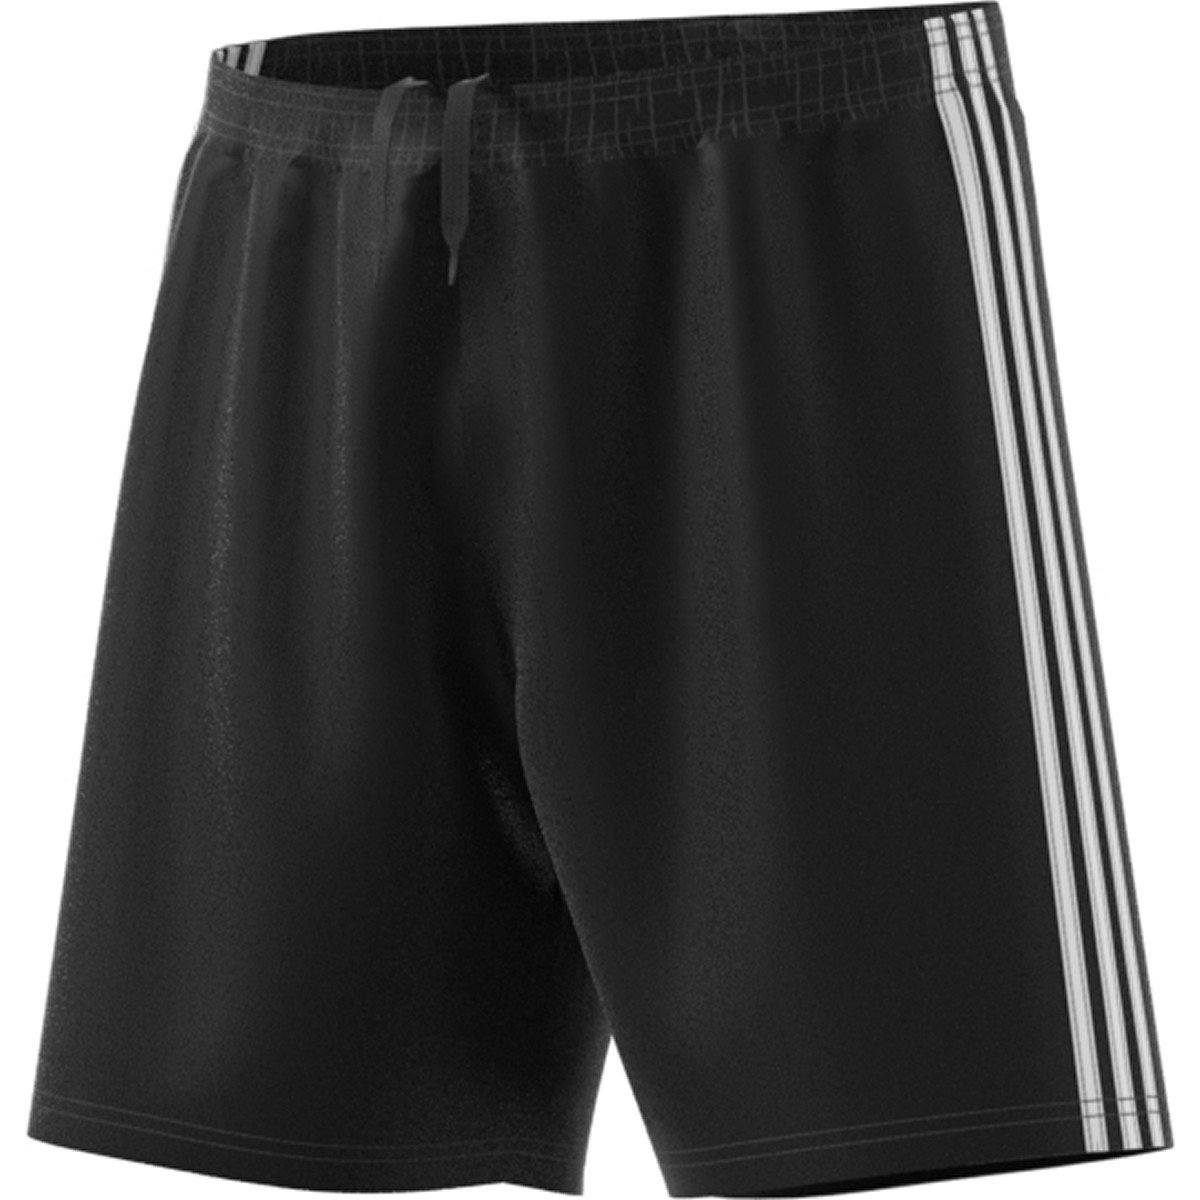 adidas Men's Condivo 18 Shorts | CF0709 Soccer Apparel adidas Adult XS black/white